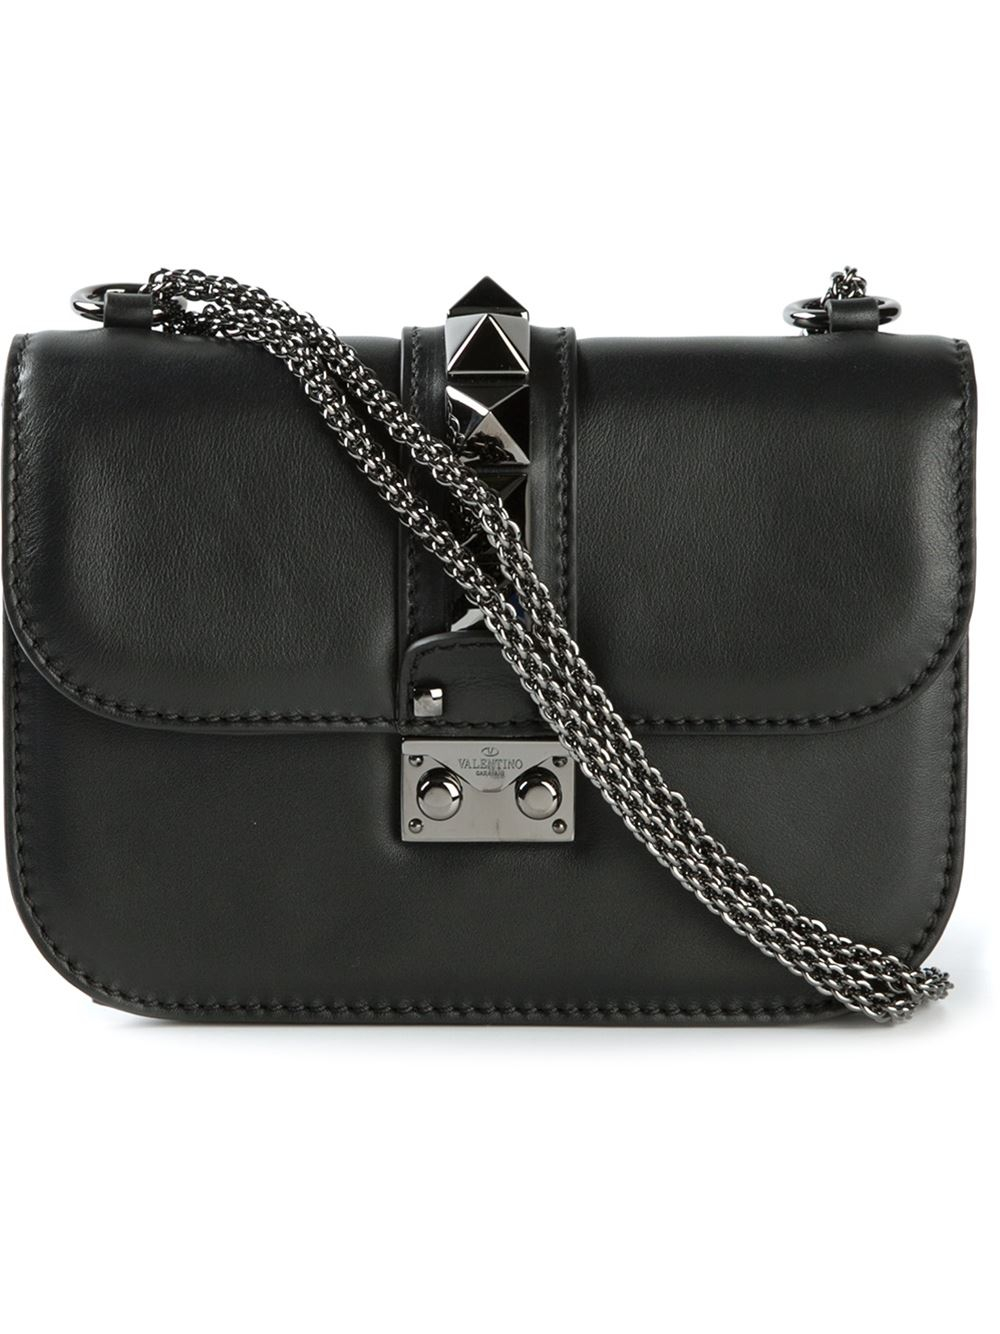 24a611ecf1 Valentino Glam Rock Nappa-Leather Shoulder Bag in Black - Lyst